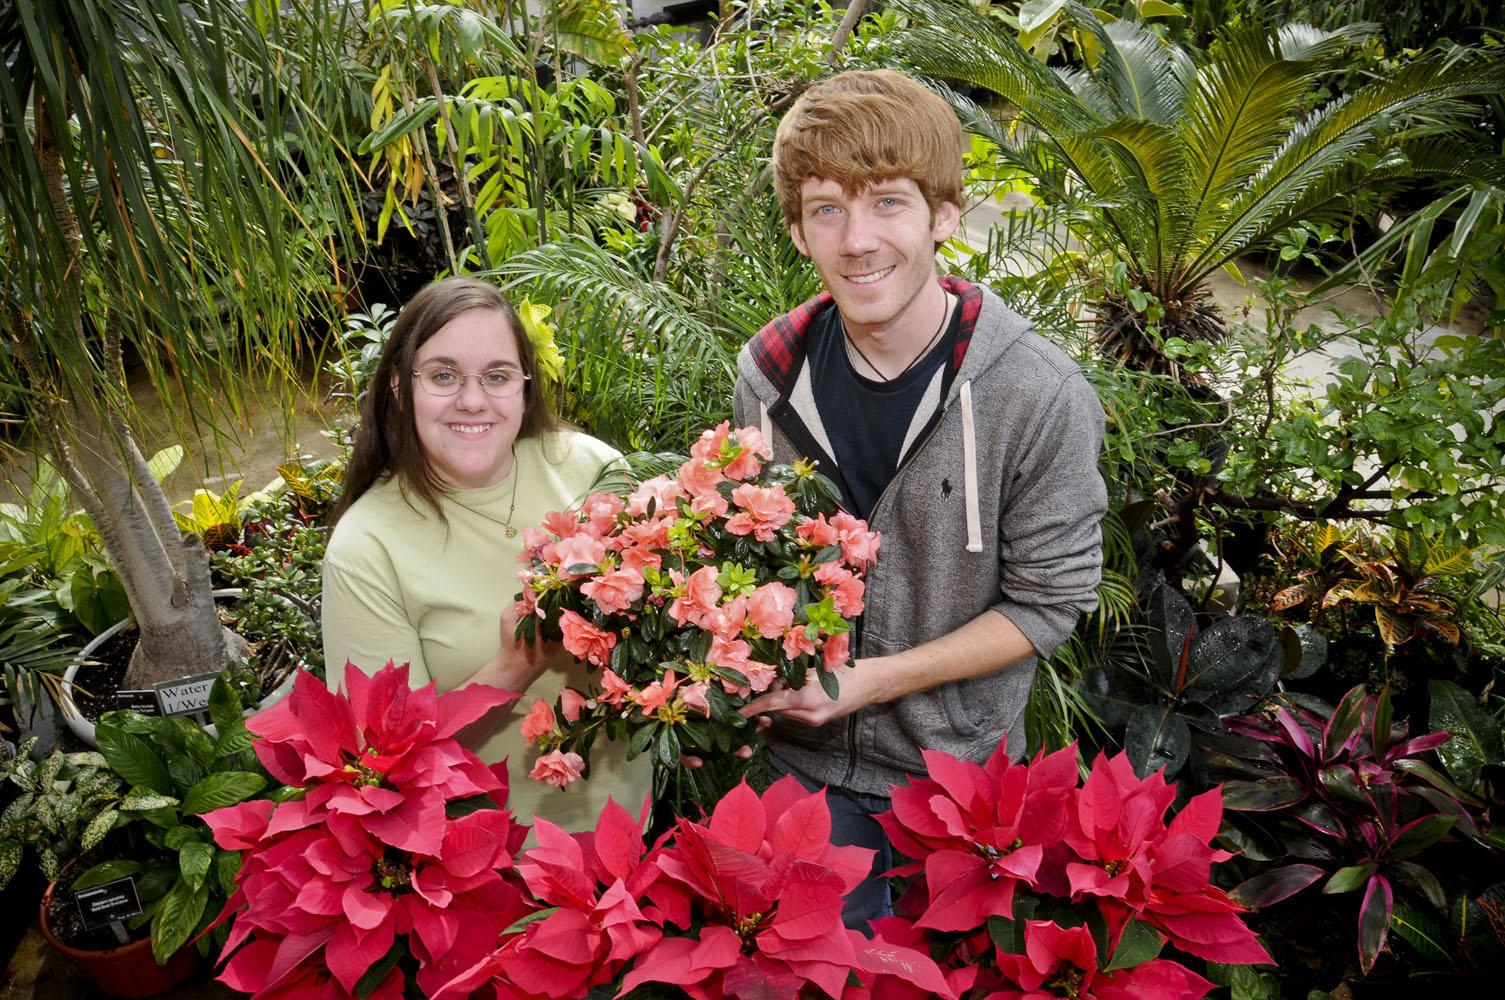 Mississippi State University Horticulture Club members Deanna Lyle of Aberdeen and Josh Craver of Tyler, Texas, prepare plants to be sold at the Everything Garden Expo to be held at the Mississippi Horse Park in Starkville March 24 and 25. (Photo by Scott Corey)